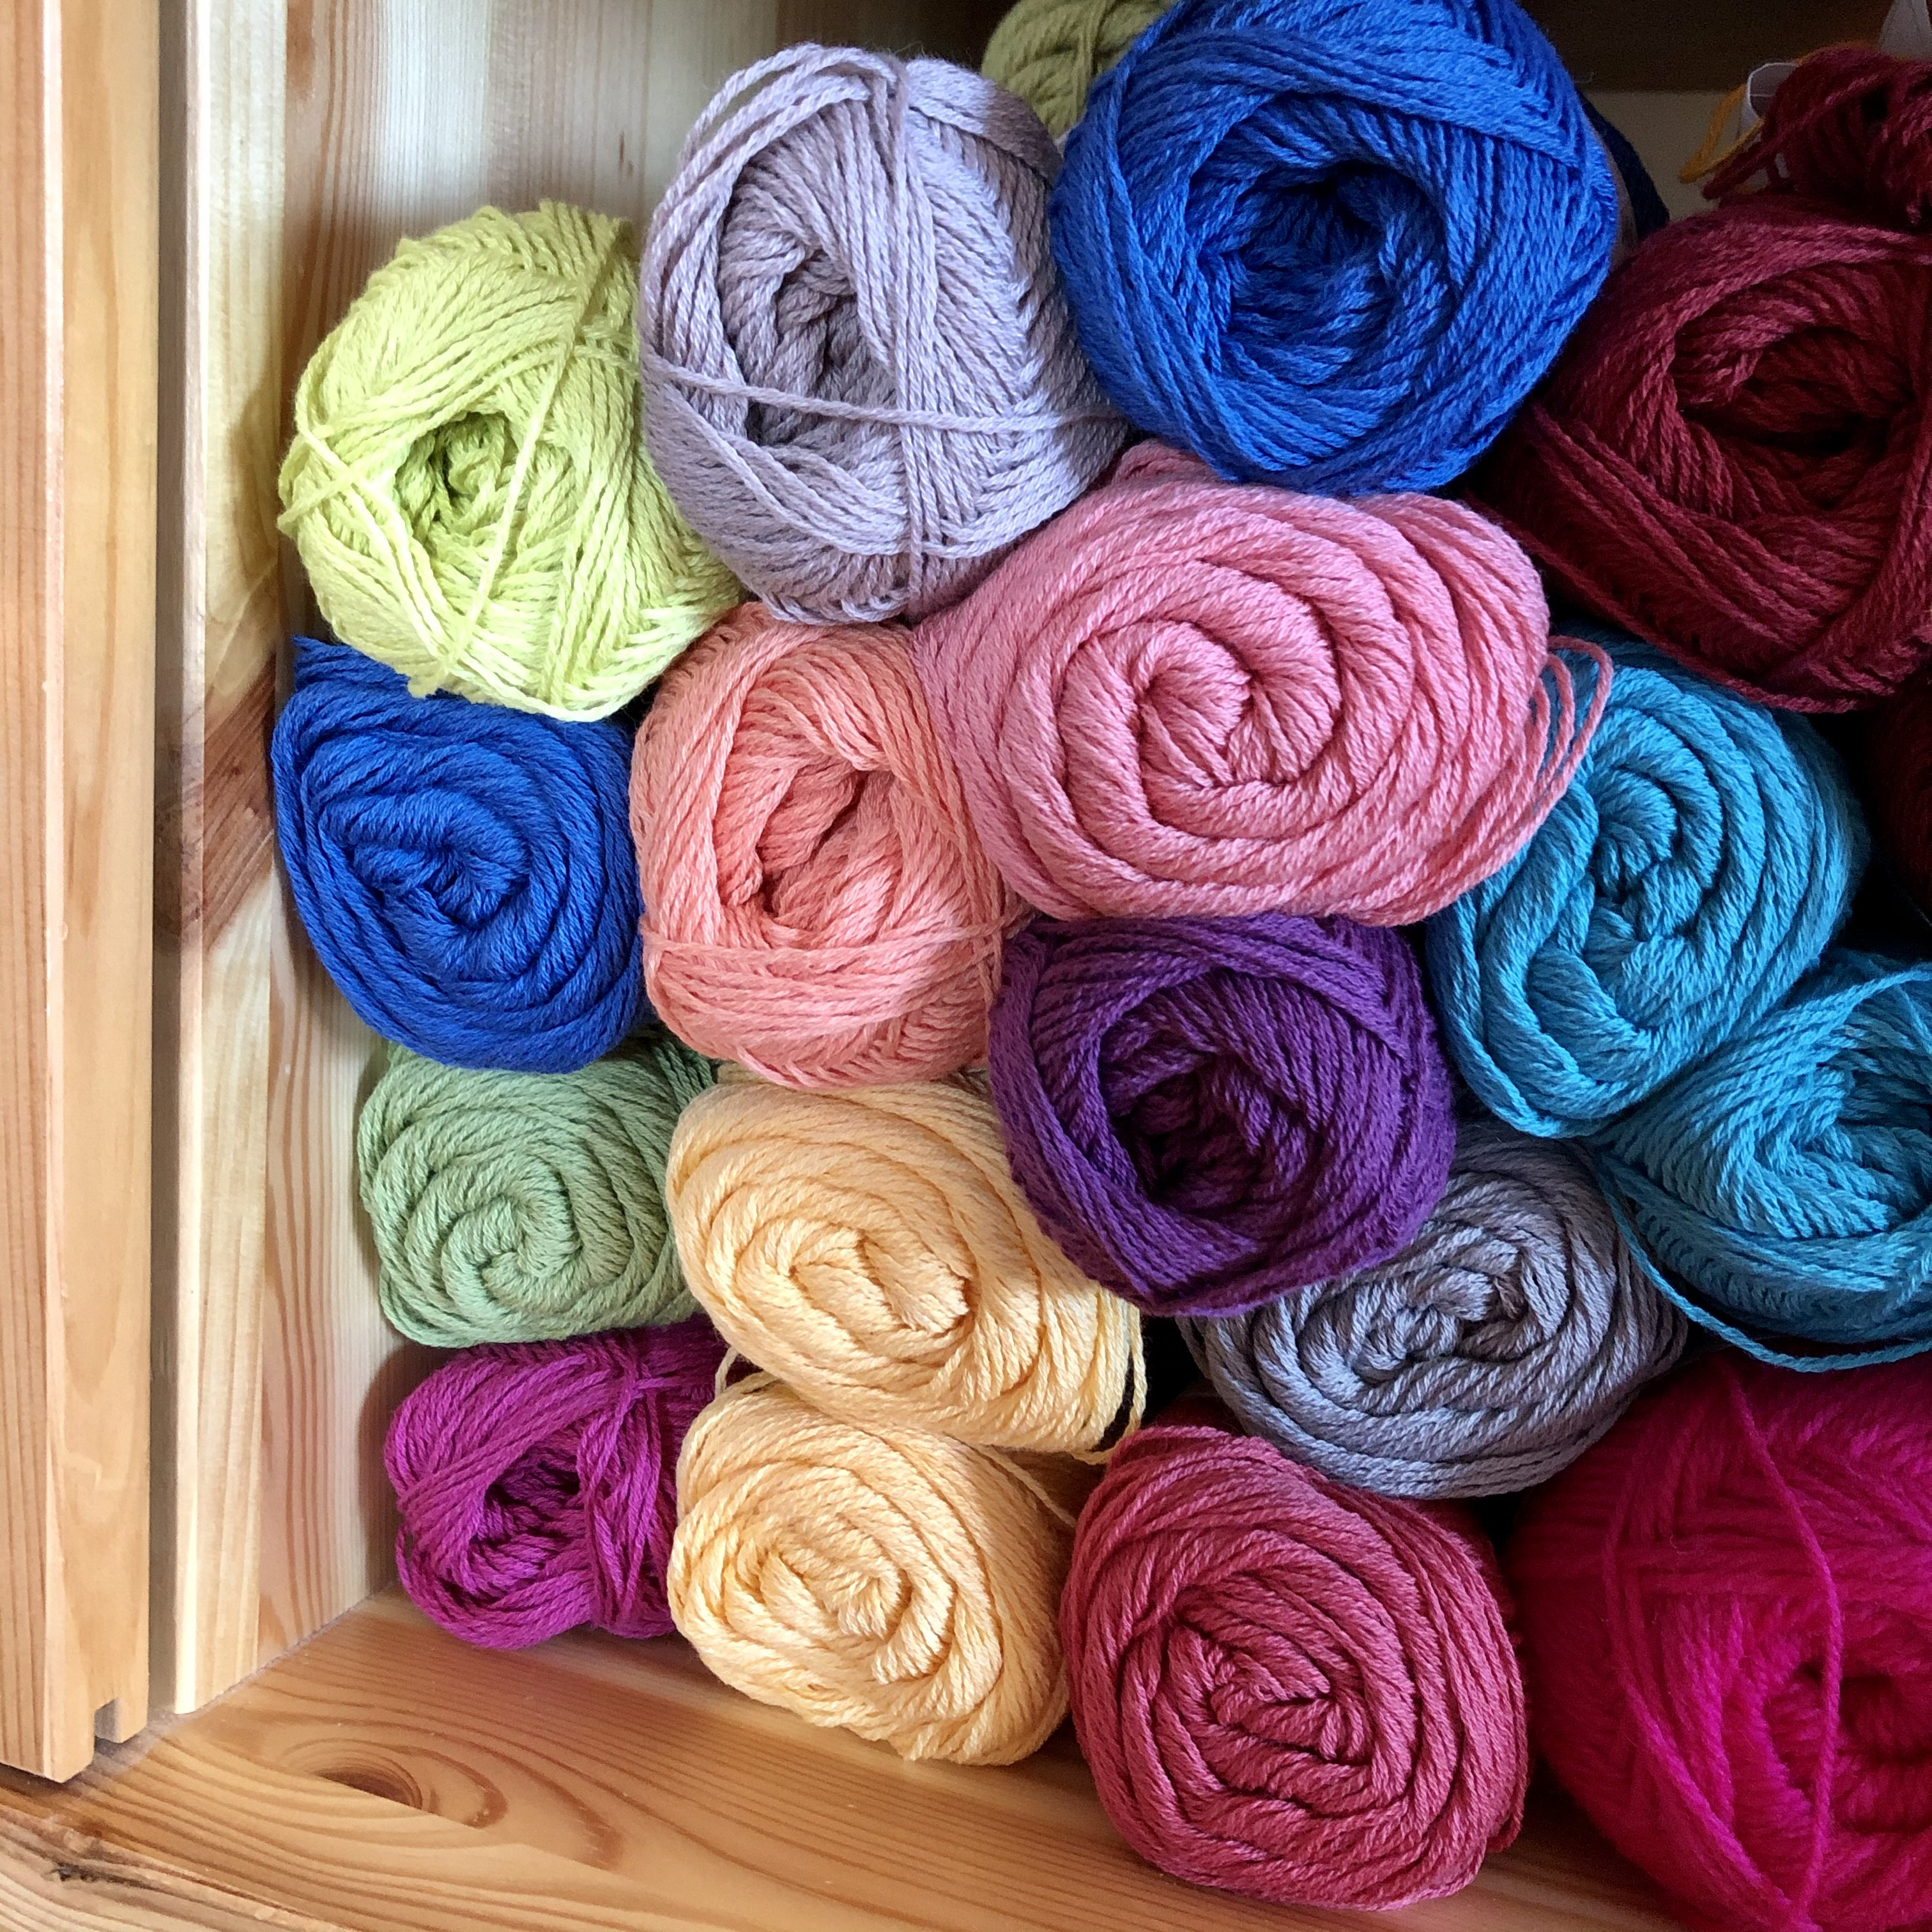 Assortment of stacked yarns